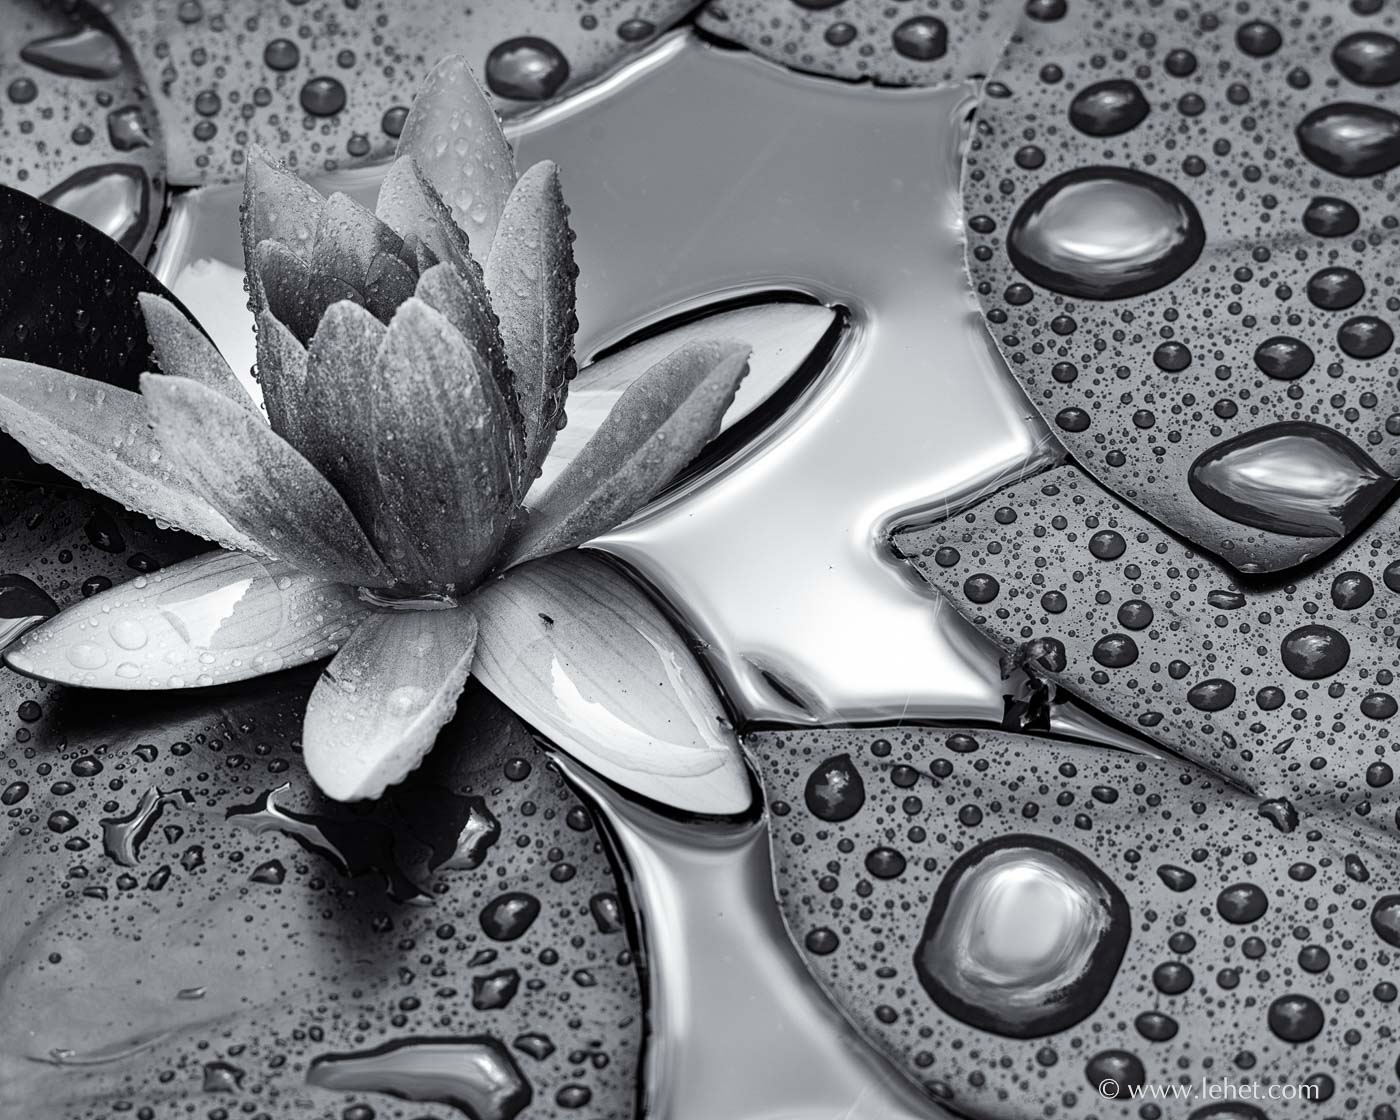 black and white wet morning glory after rain